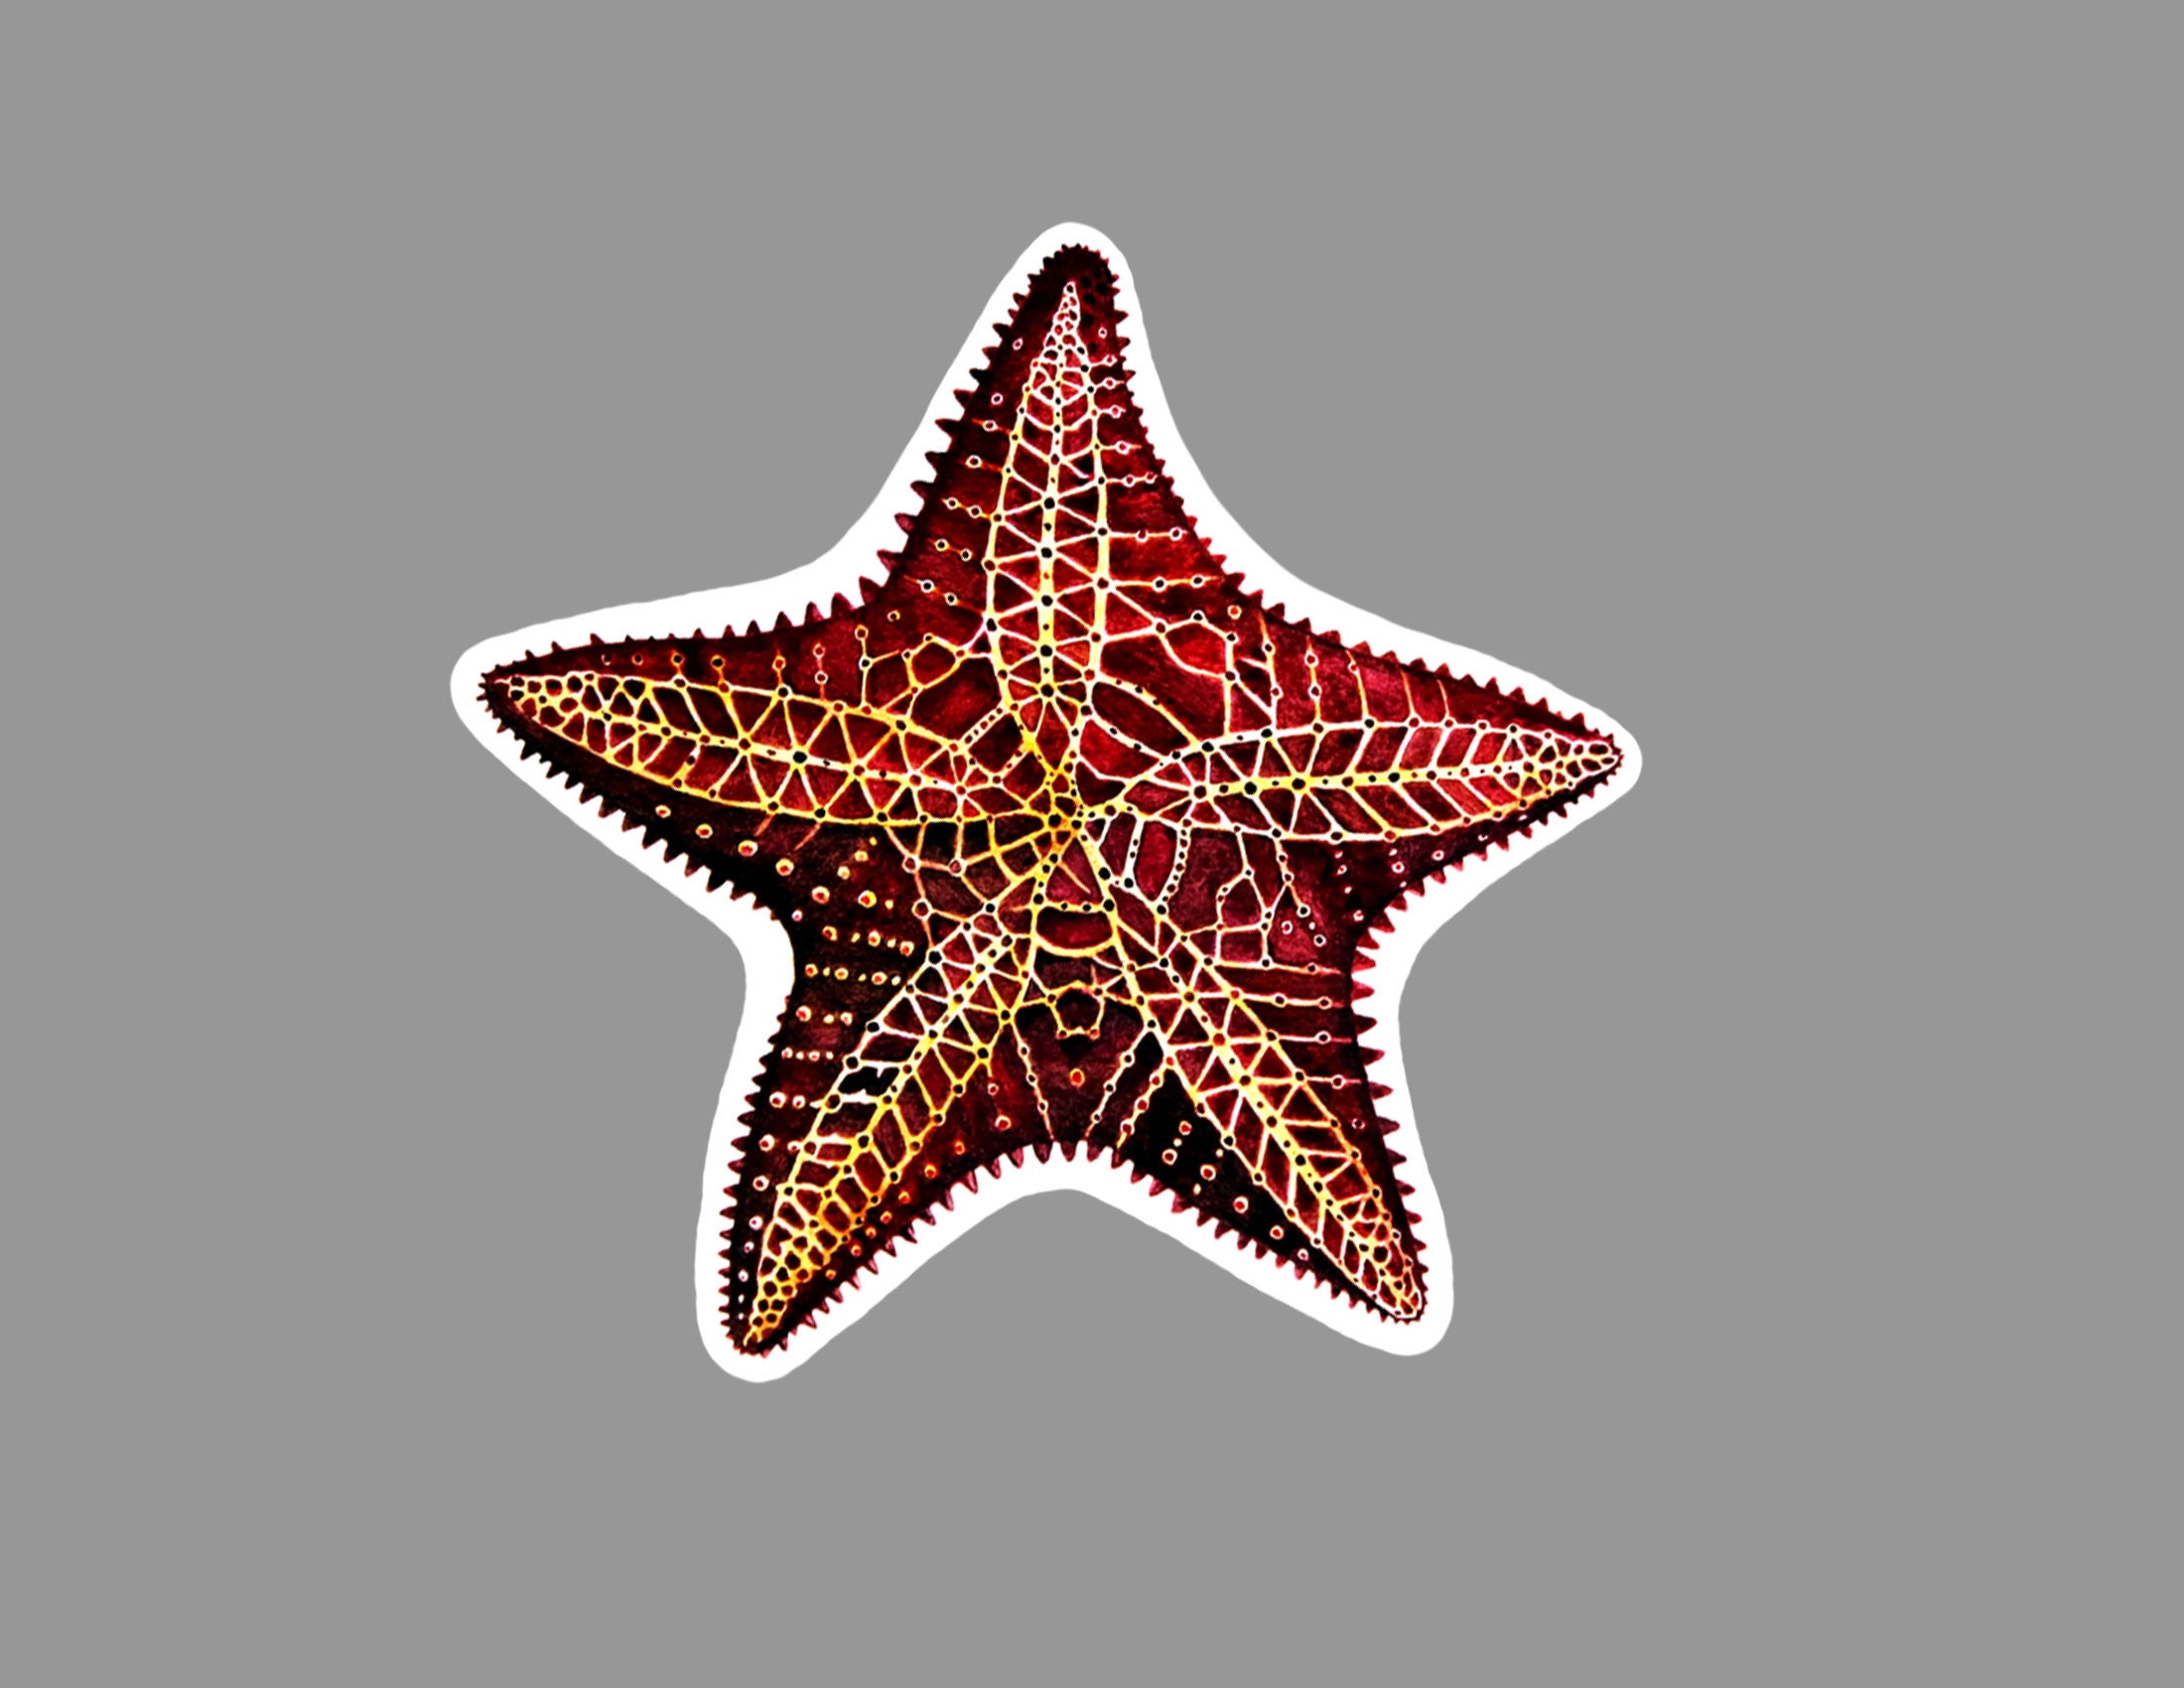 starfish sticker.jpg